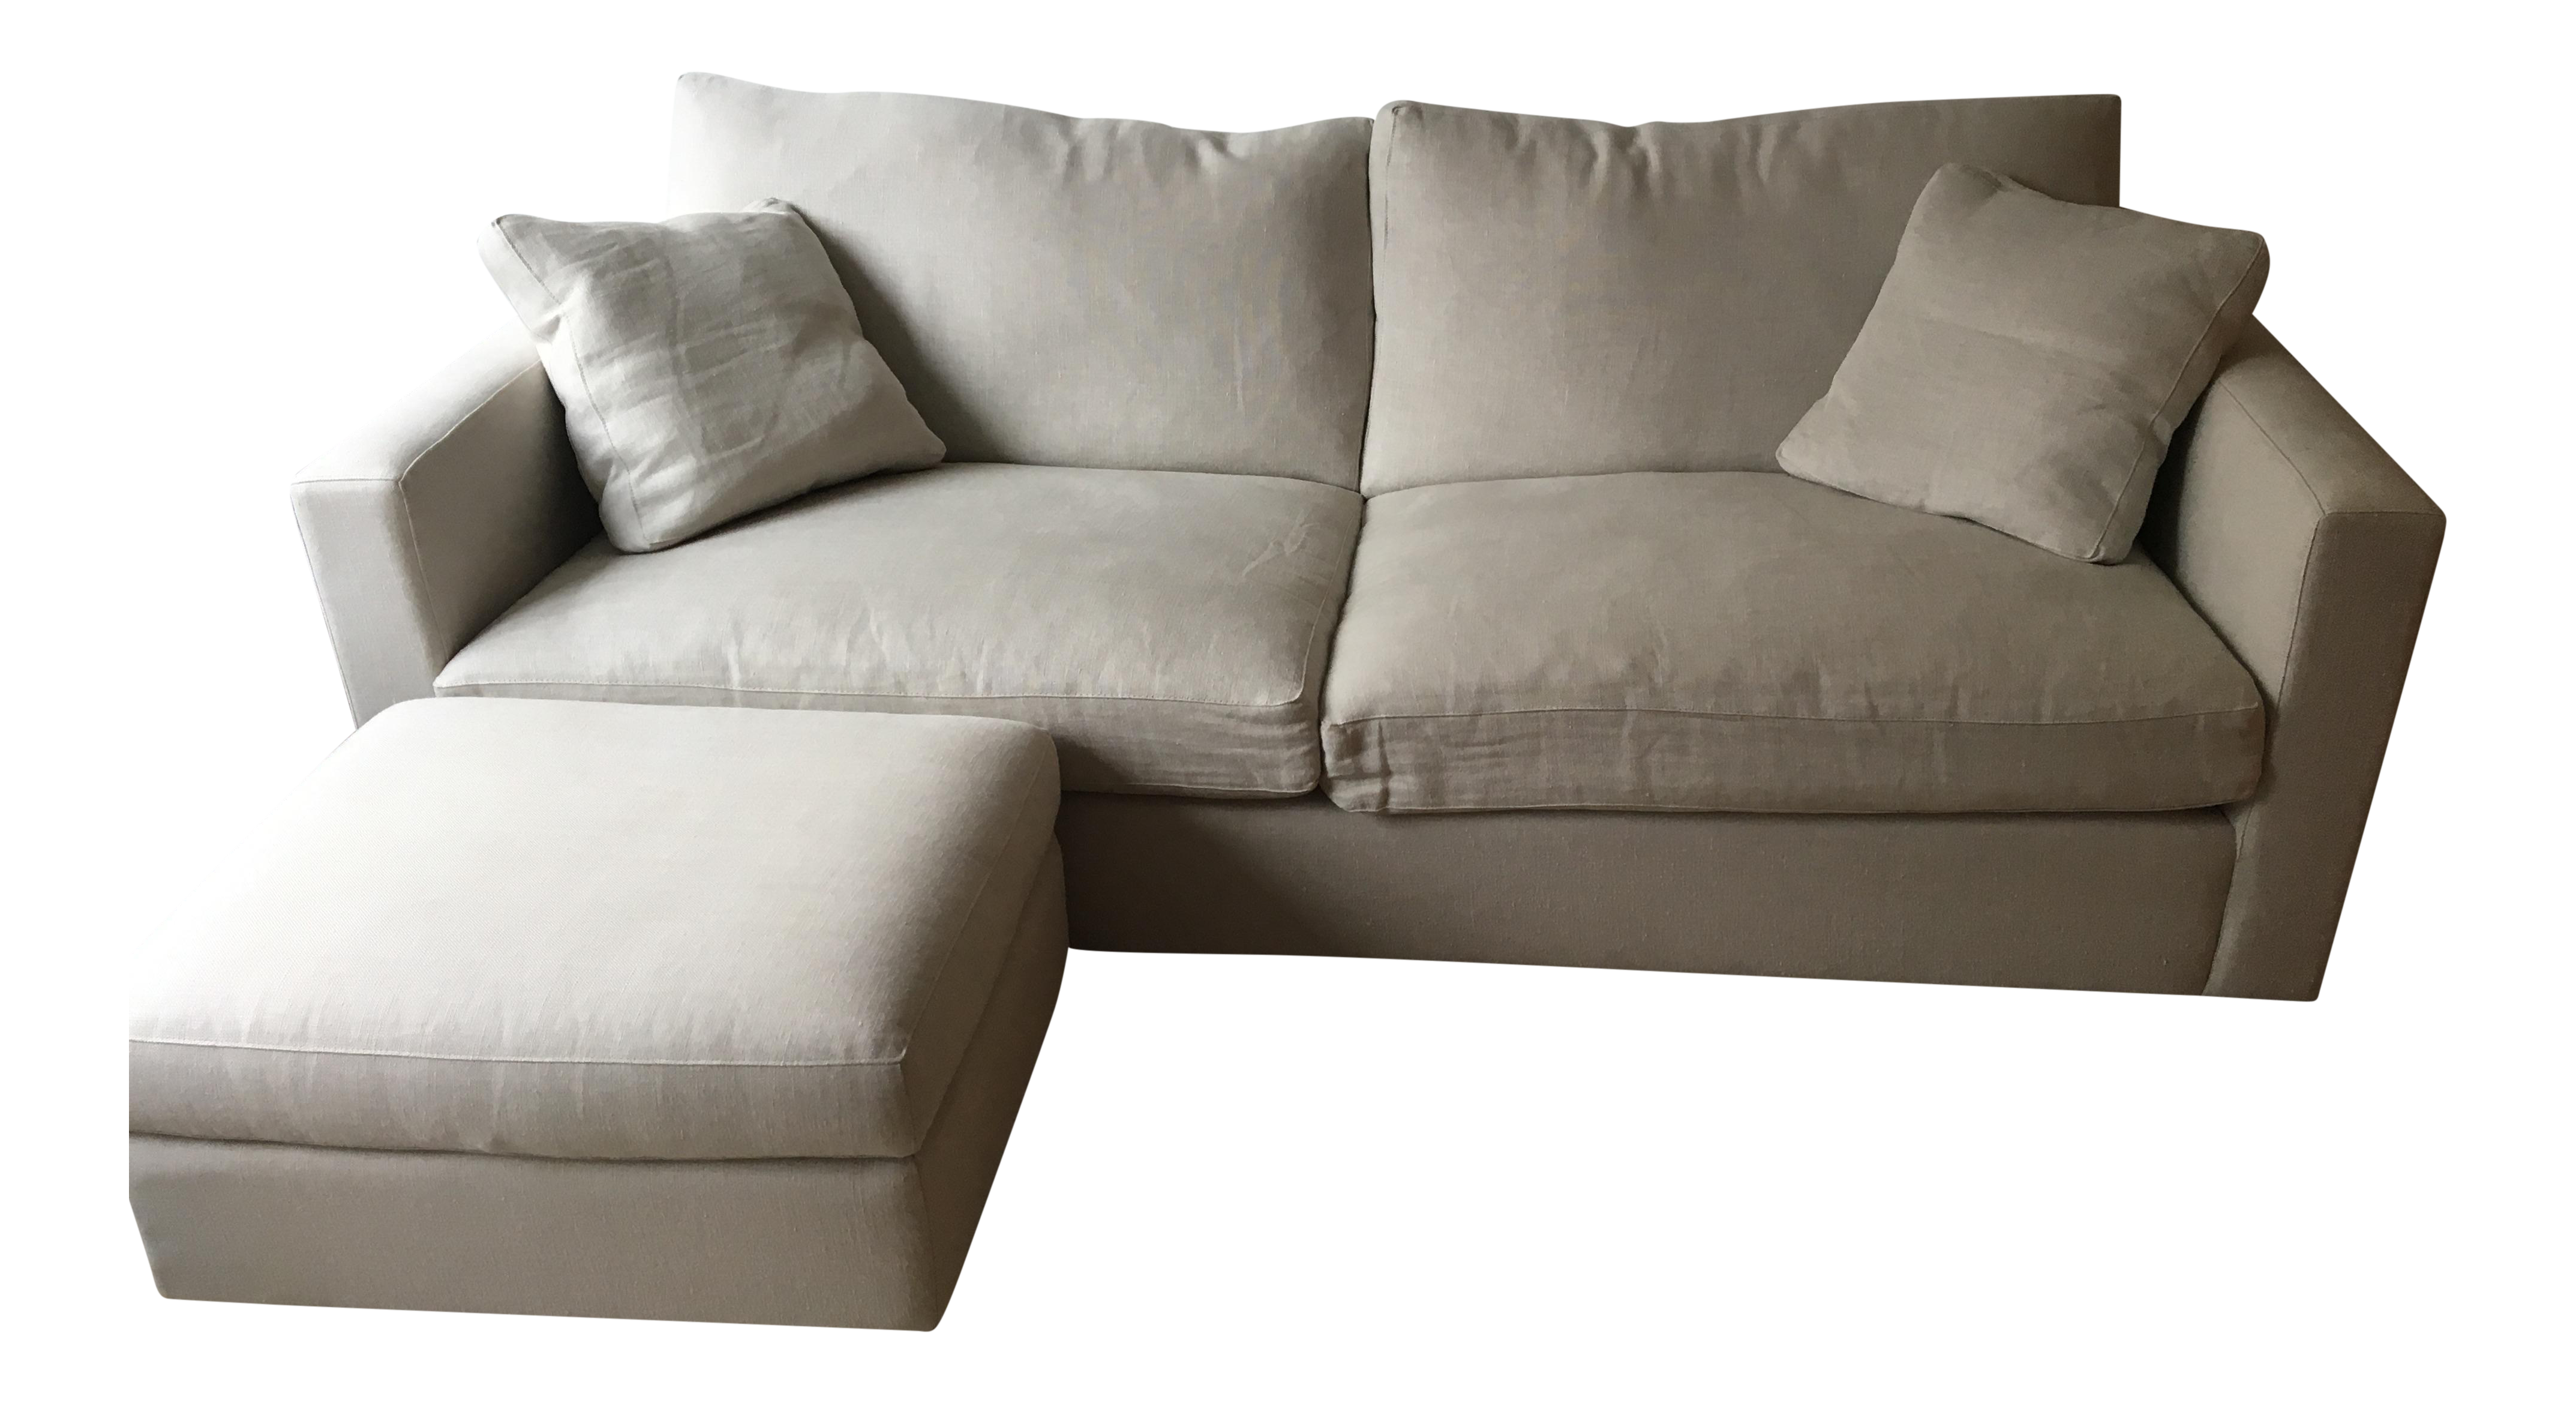 ABC Home Two Seater Sofa u0026 Ottoman - Image 1 ...  sc 1 st  Chairish : two seater sofa with chaise - Sectionals, Sofas & Couches